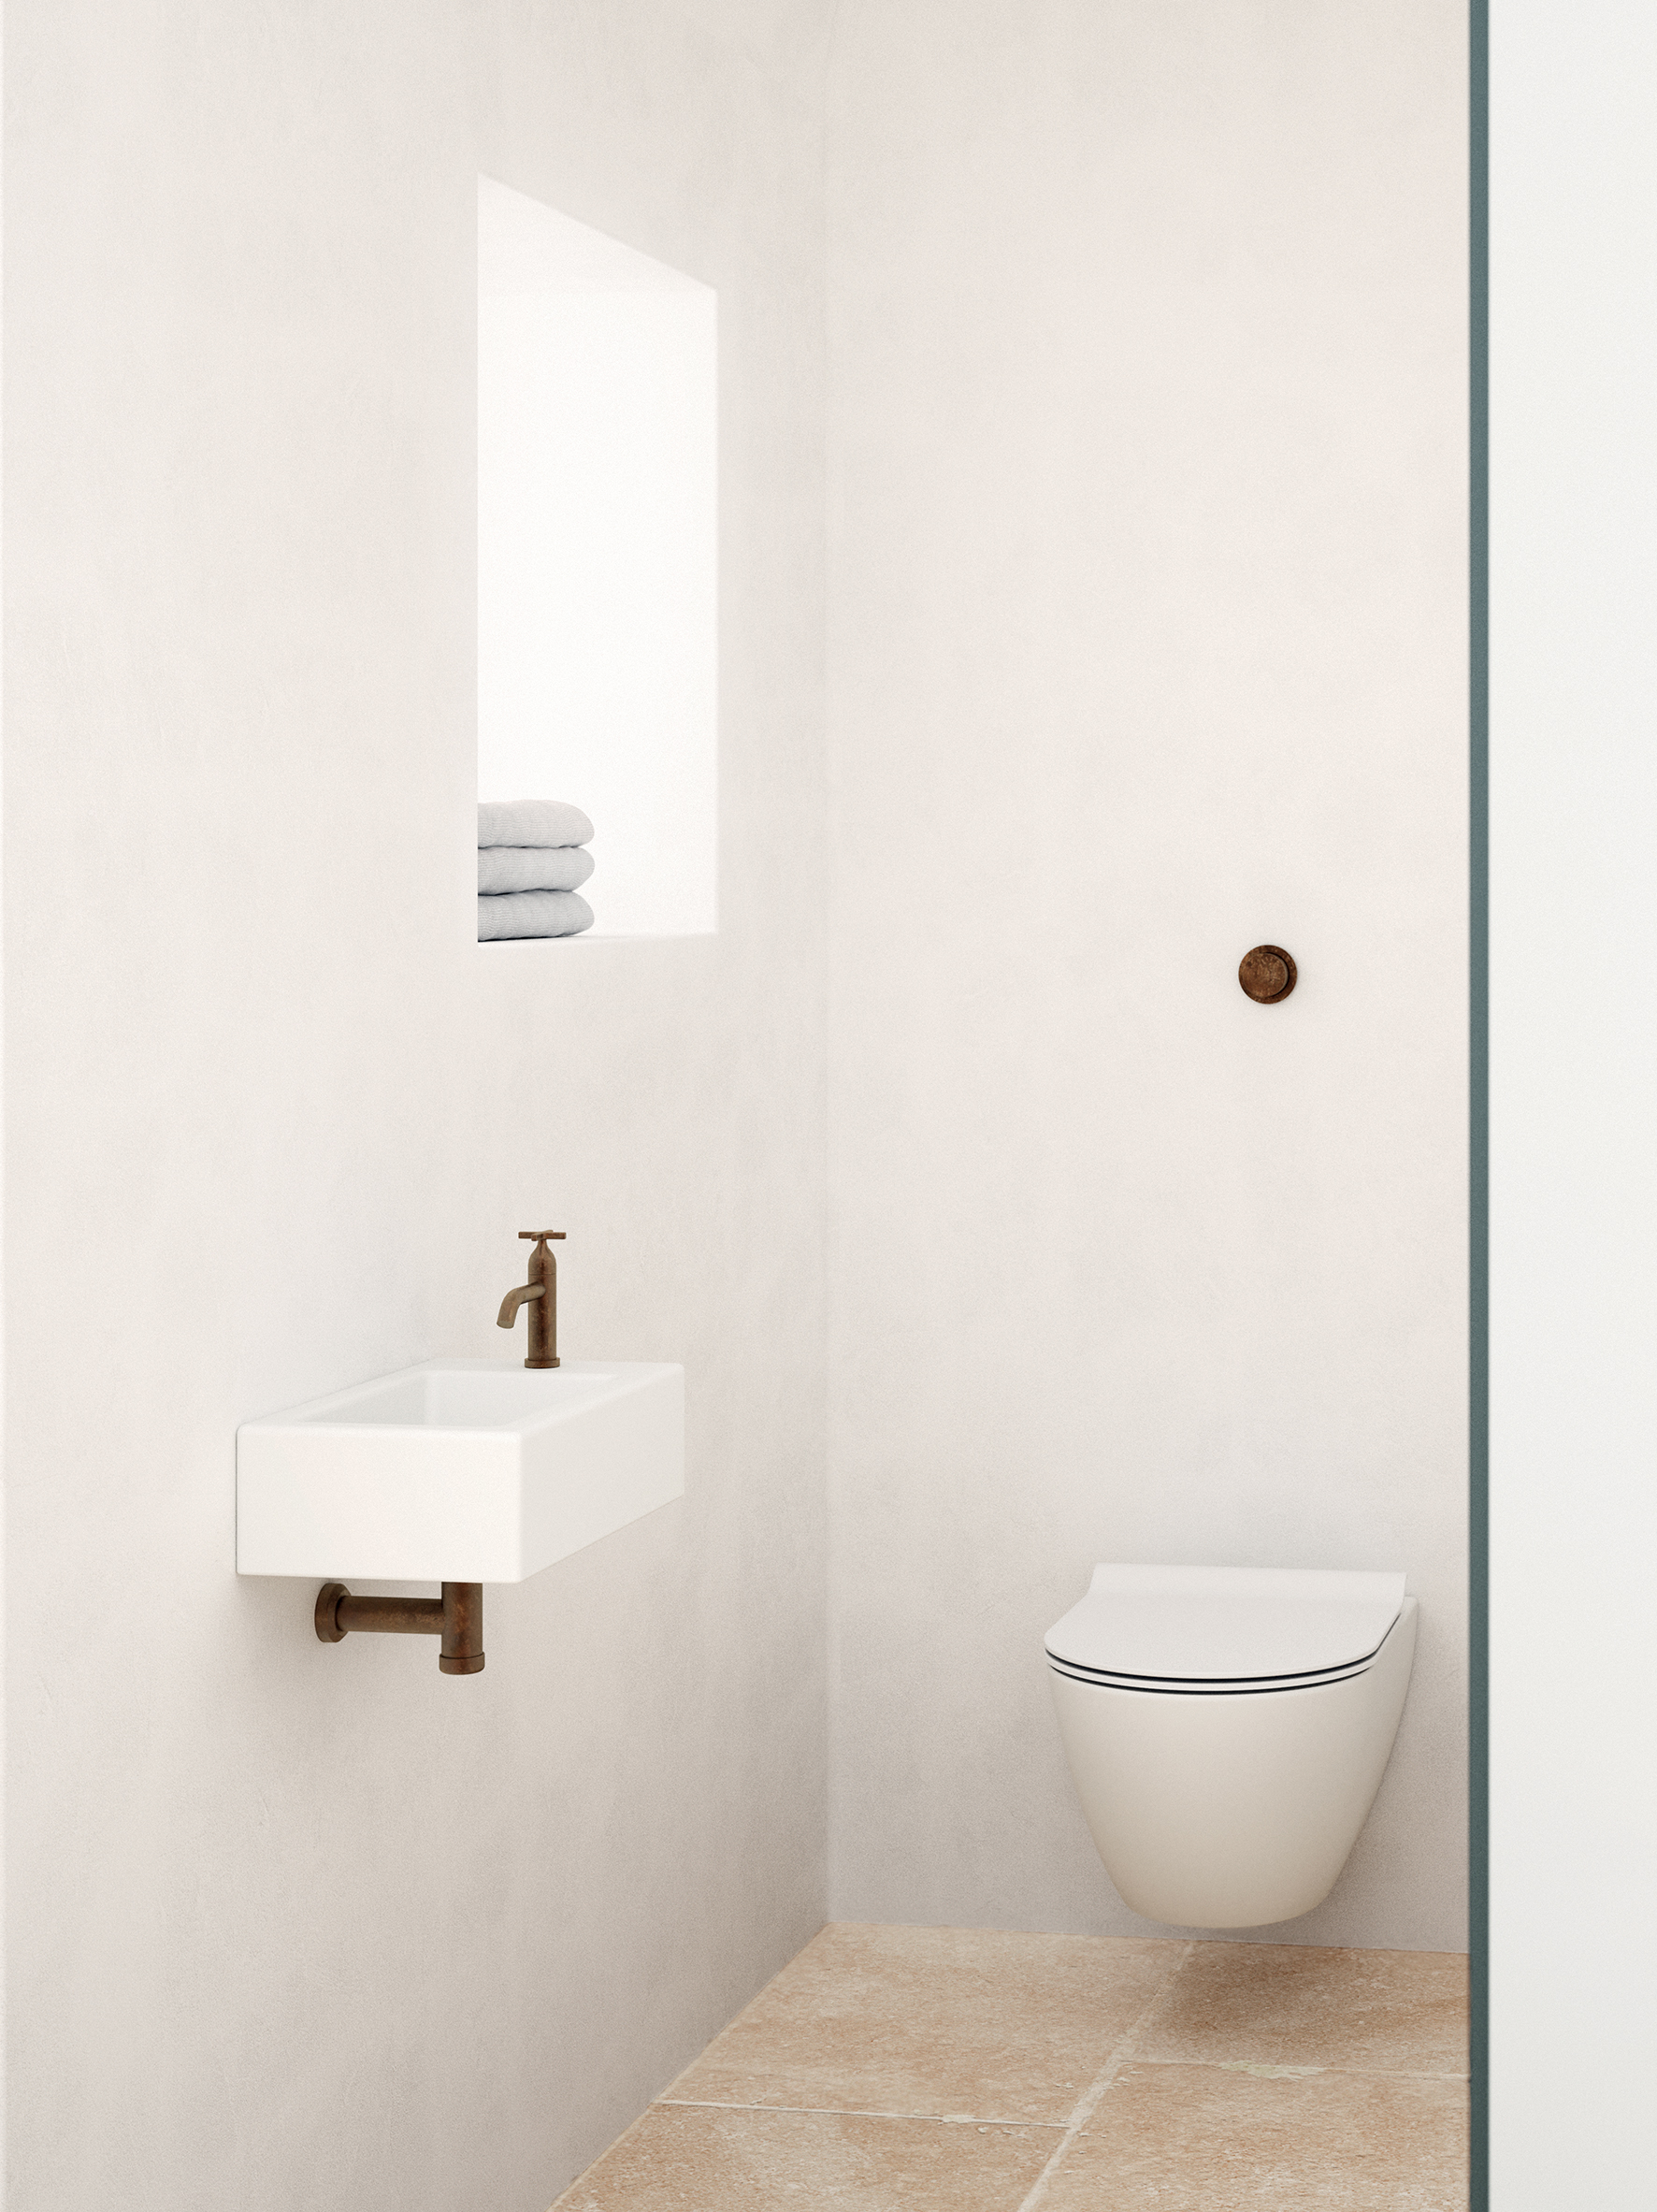 micro bathrooms, micro living, bathroom design